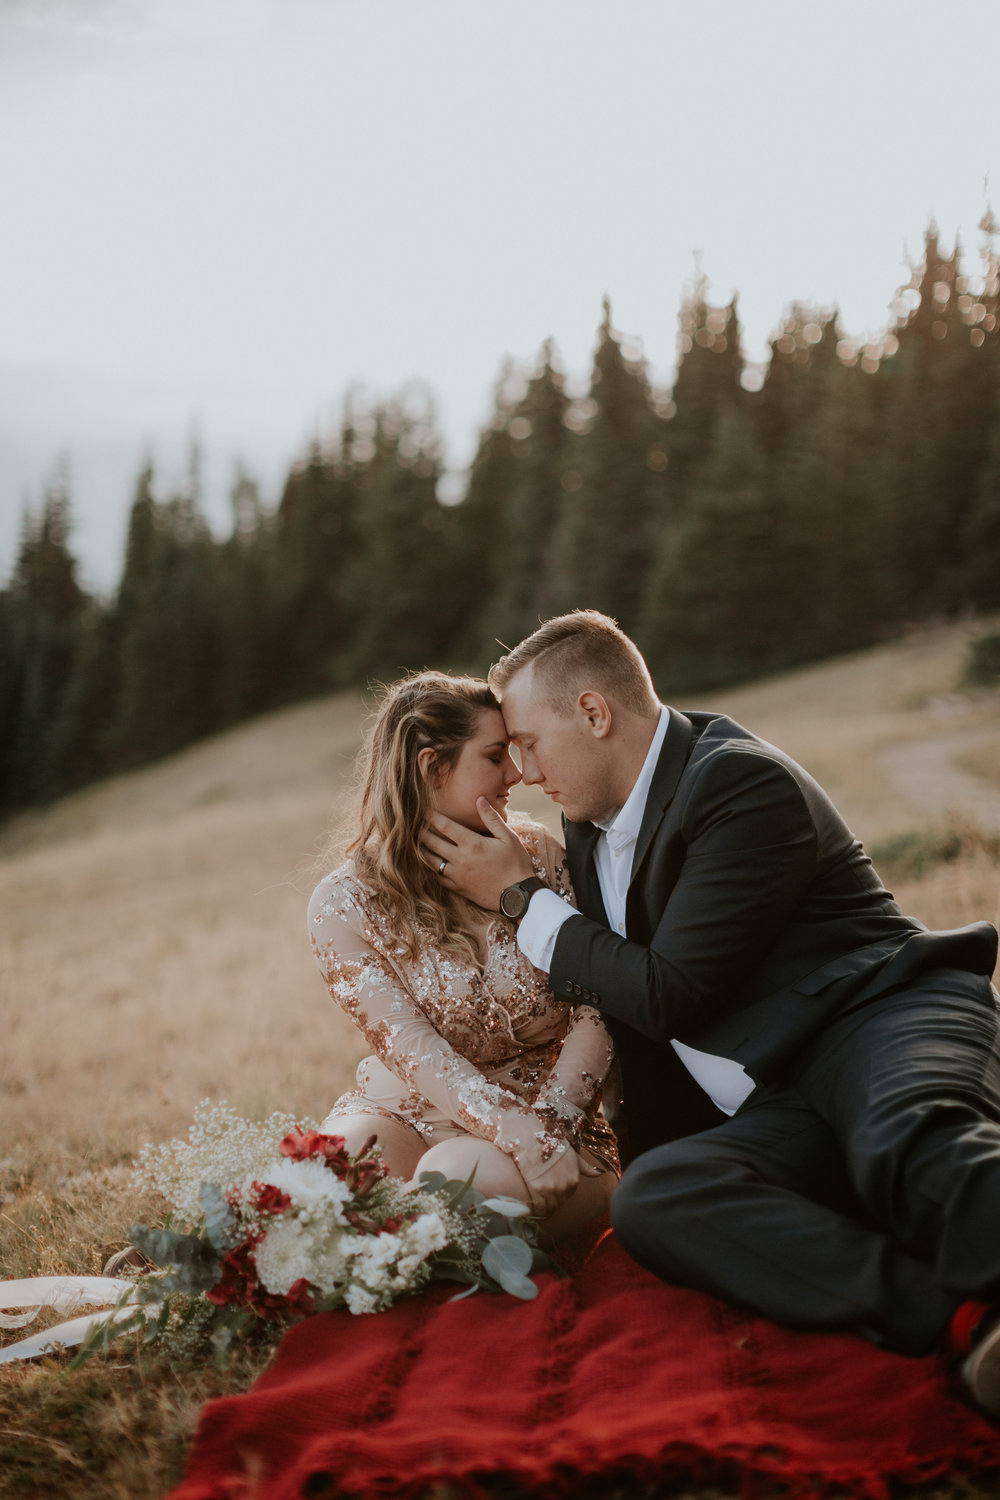 PNW-Hurricane-Ridge-Port-Angeles-Washington-elopement-photographer-kayla-dawn-photography-kayladawnphoto-wedding-anniversary-photoshoot-olympic-peninsula-262.jpg